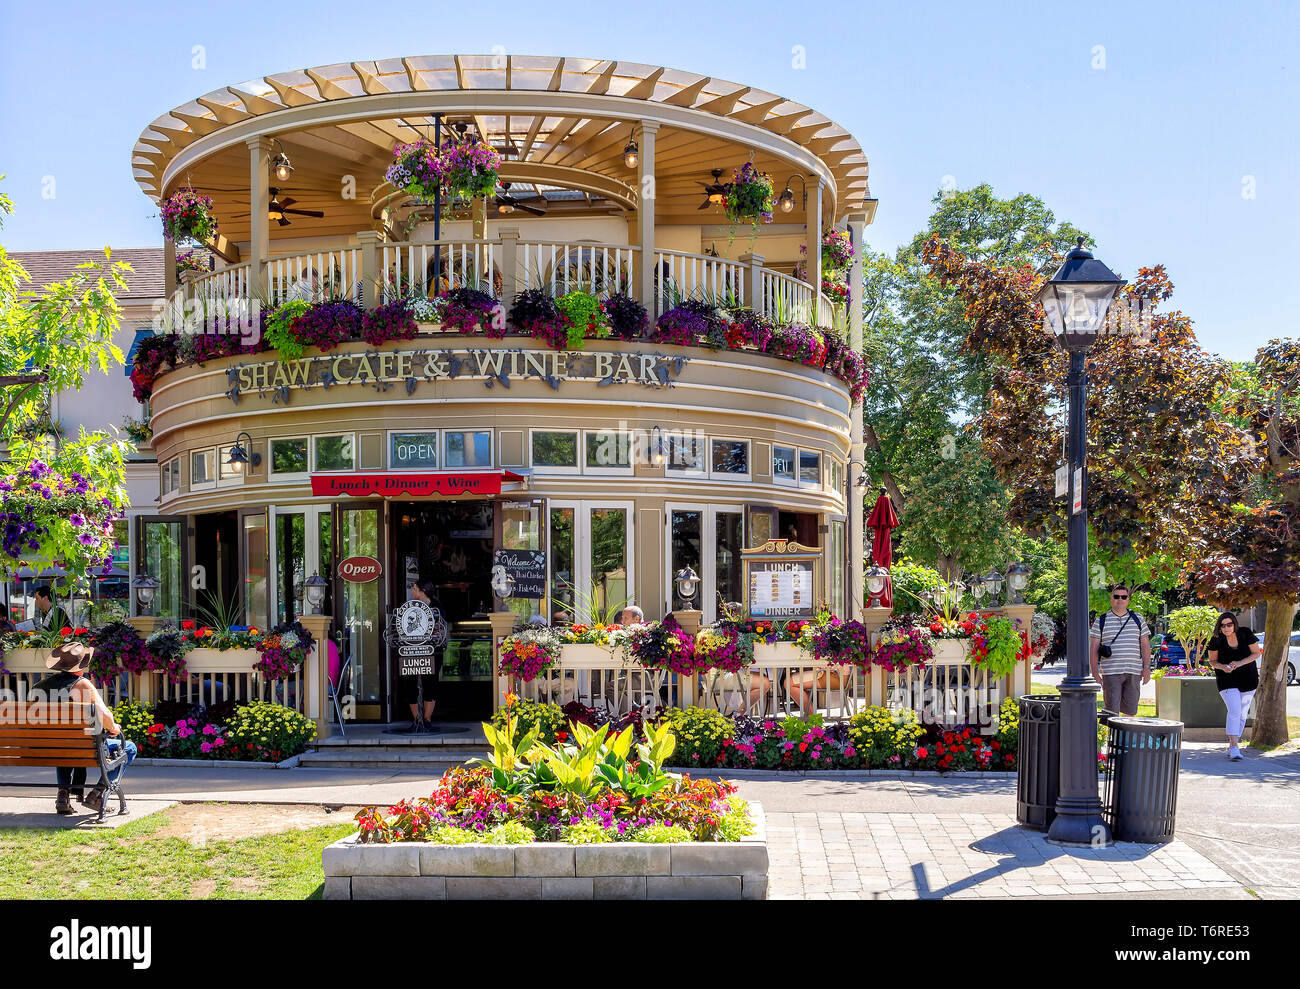 Niagara-on-the-lake, Ontatio, Canada - June 14, 2018: A famous restaurant, located in the Queen Street, is a fine wine bar and cafe, full of colors. - Stock Image